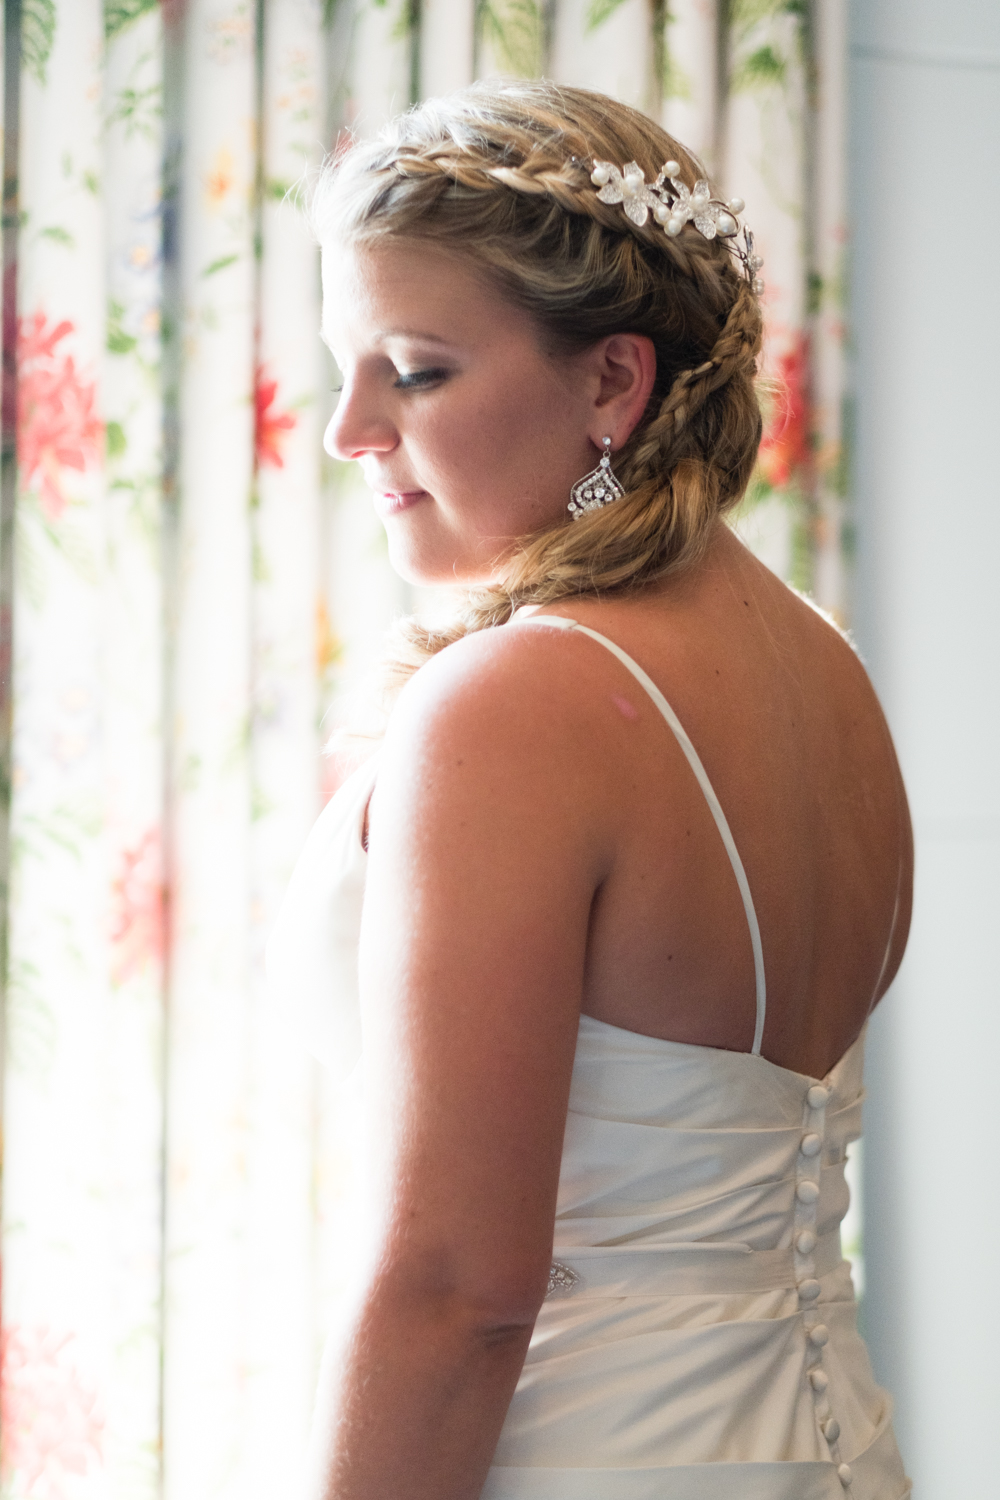 Kristen_Travis_Narragansett_Wedding-11.jpg